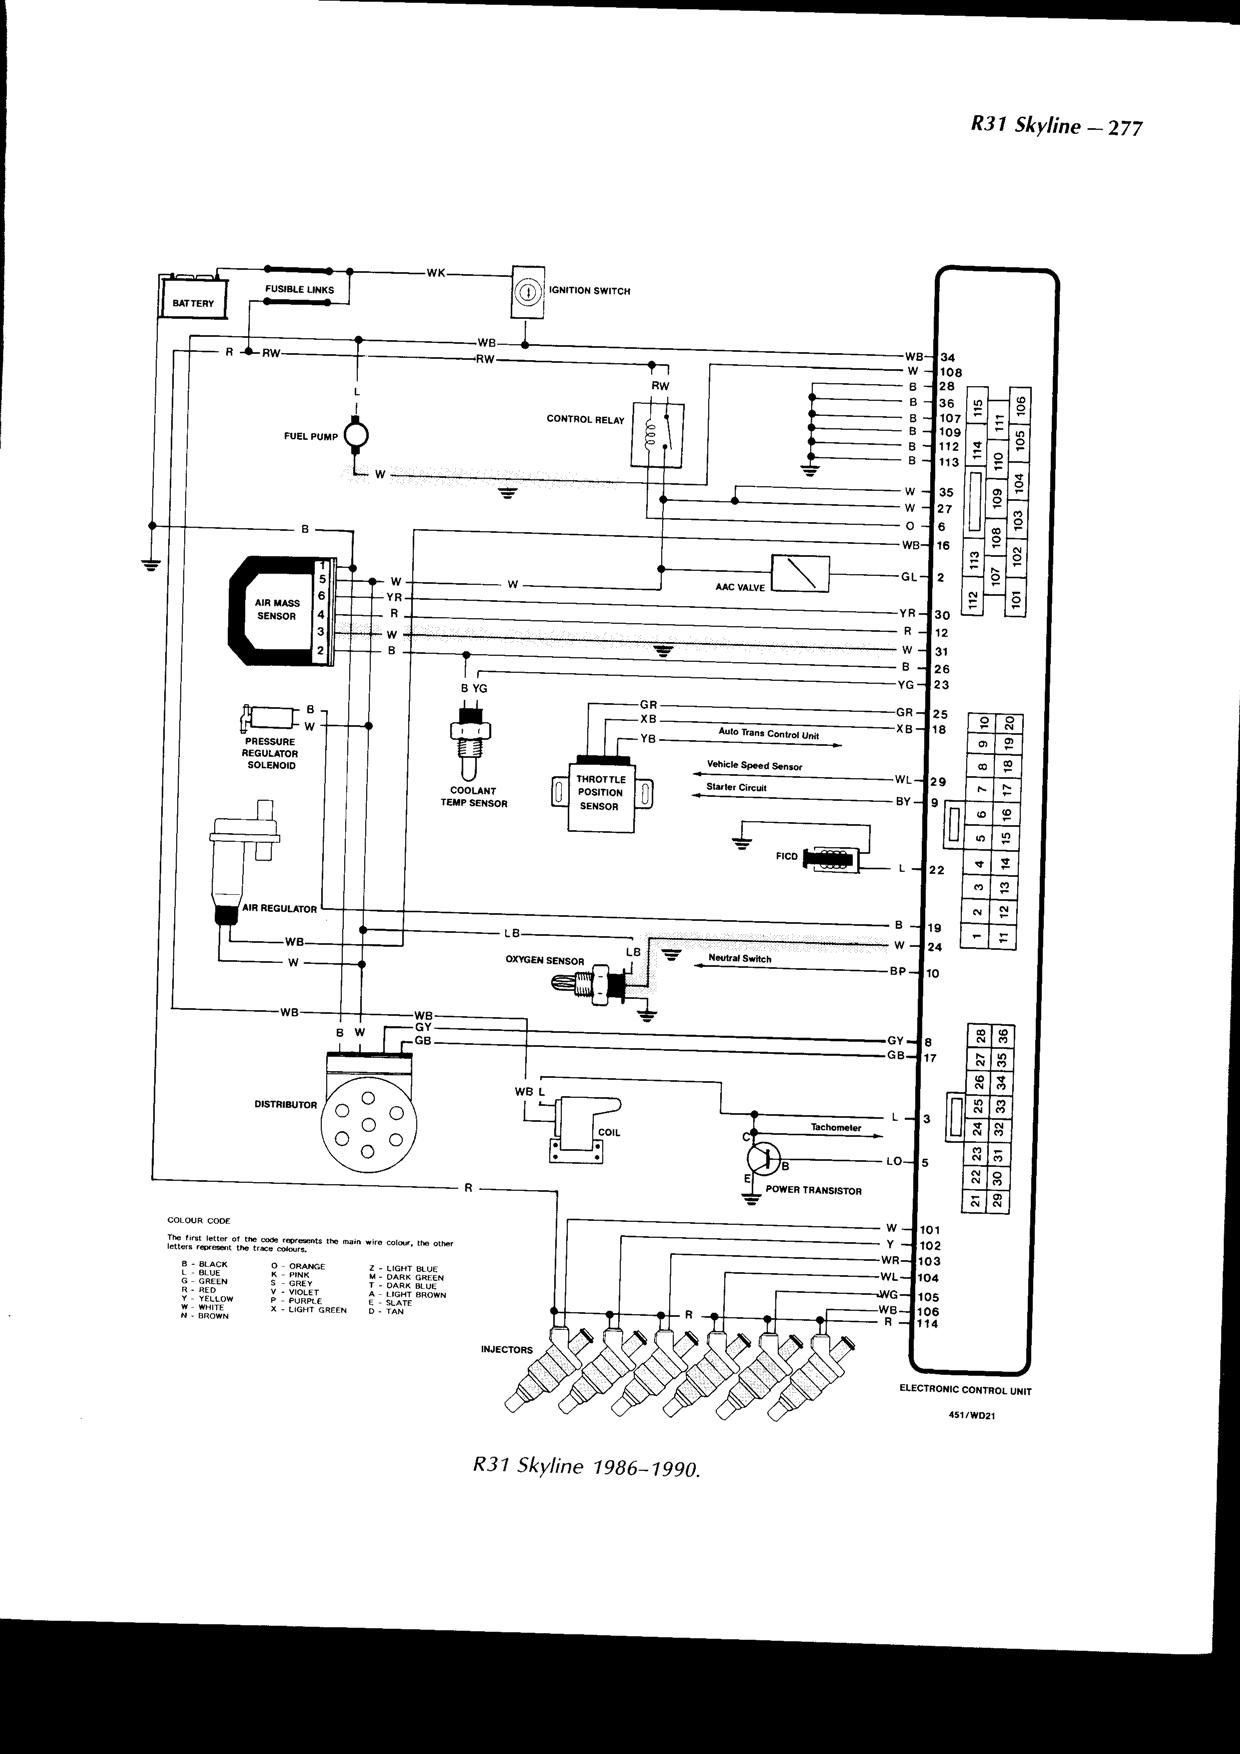 Nissan 1400 Electrical Wiring Diagram | Nissan | Pinterest - Nissan Wiring Diagram